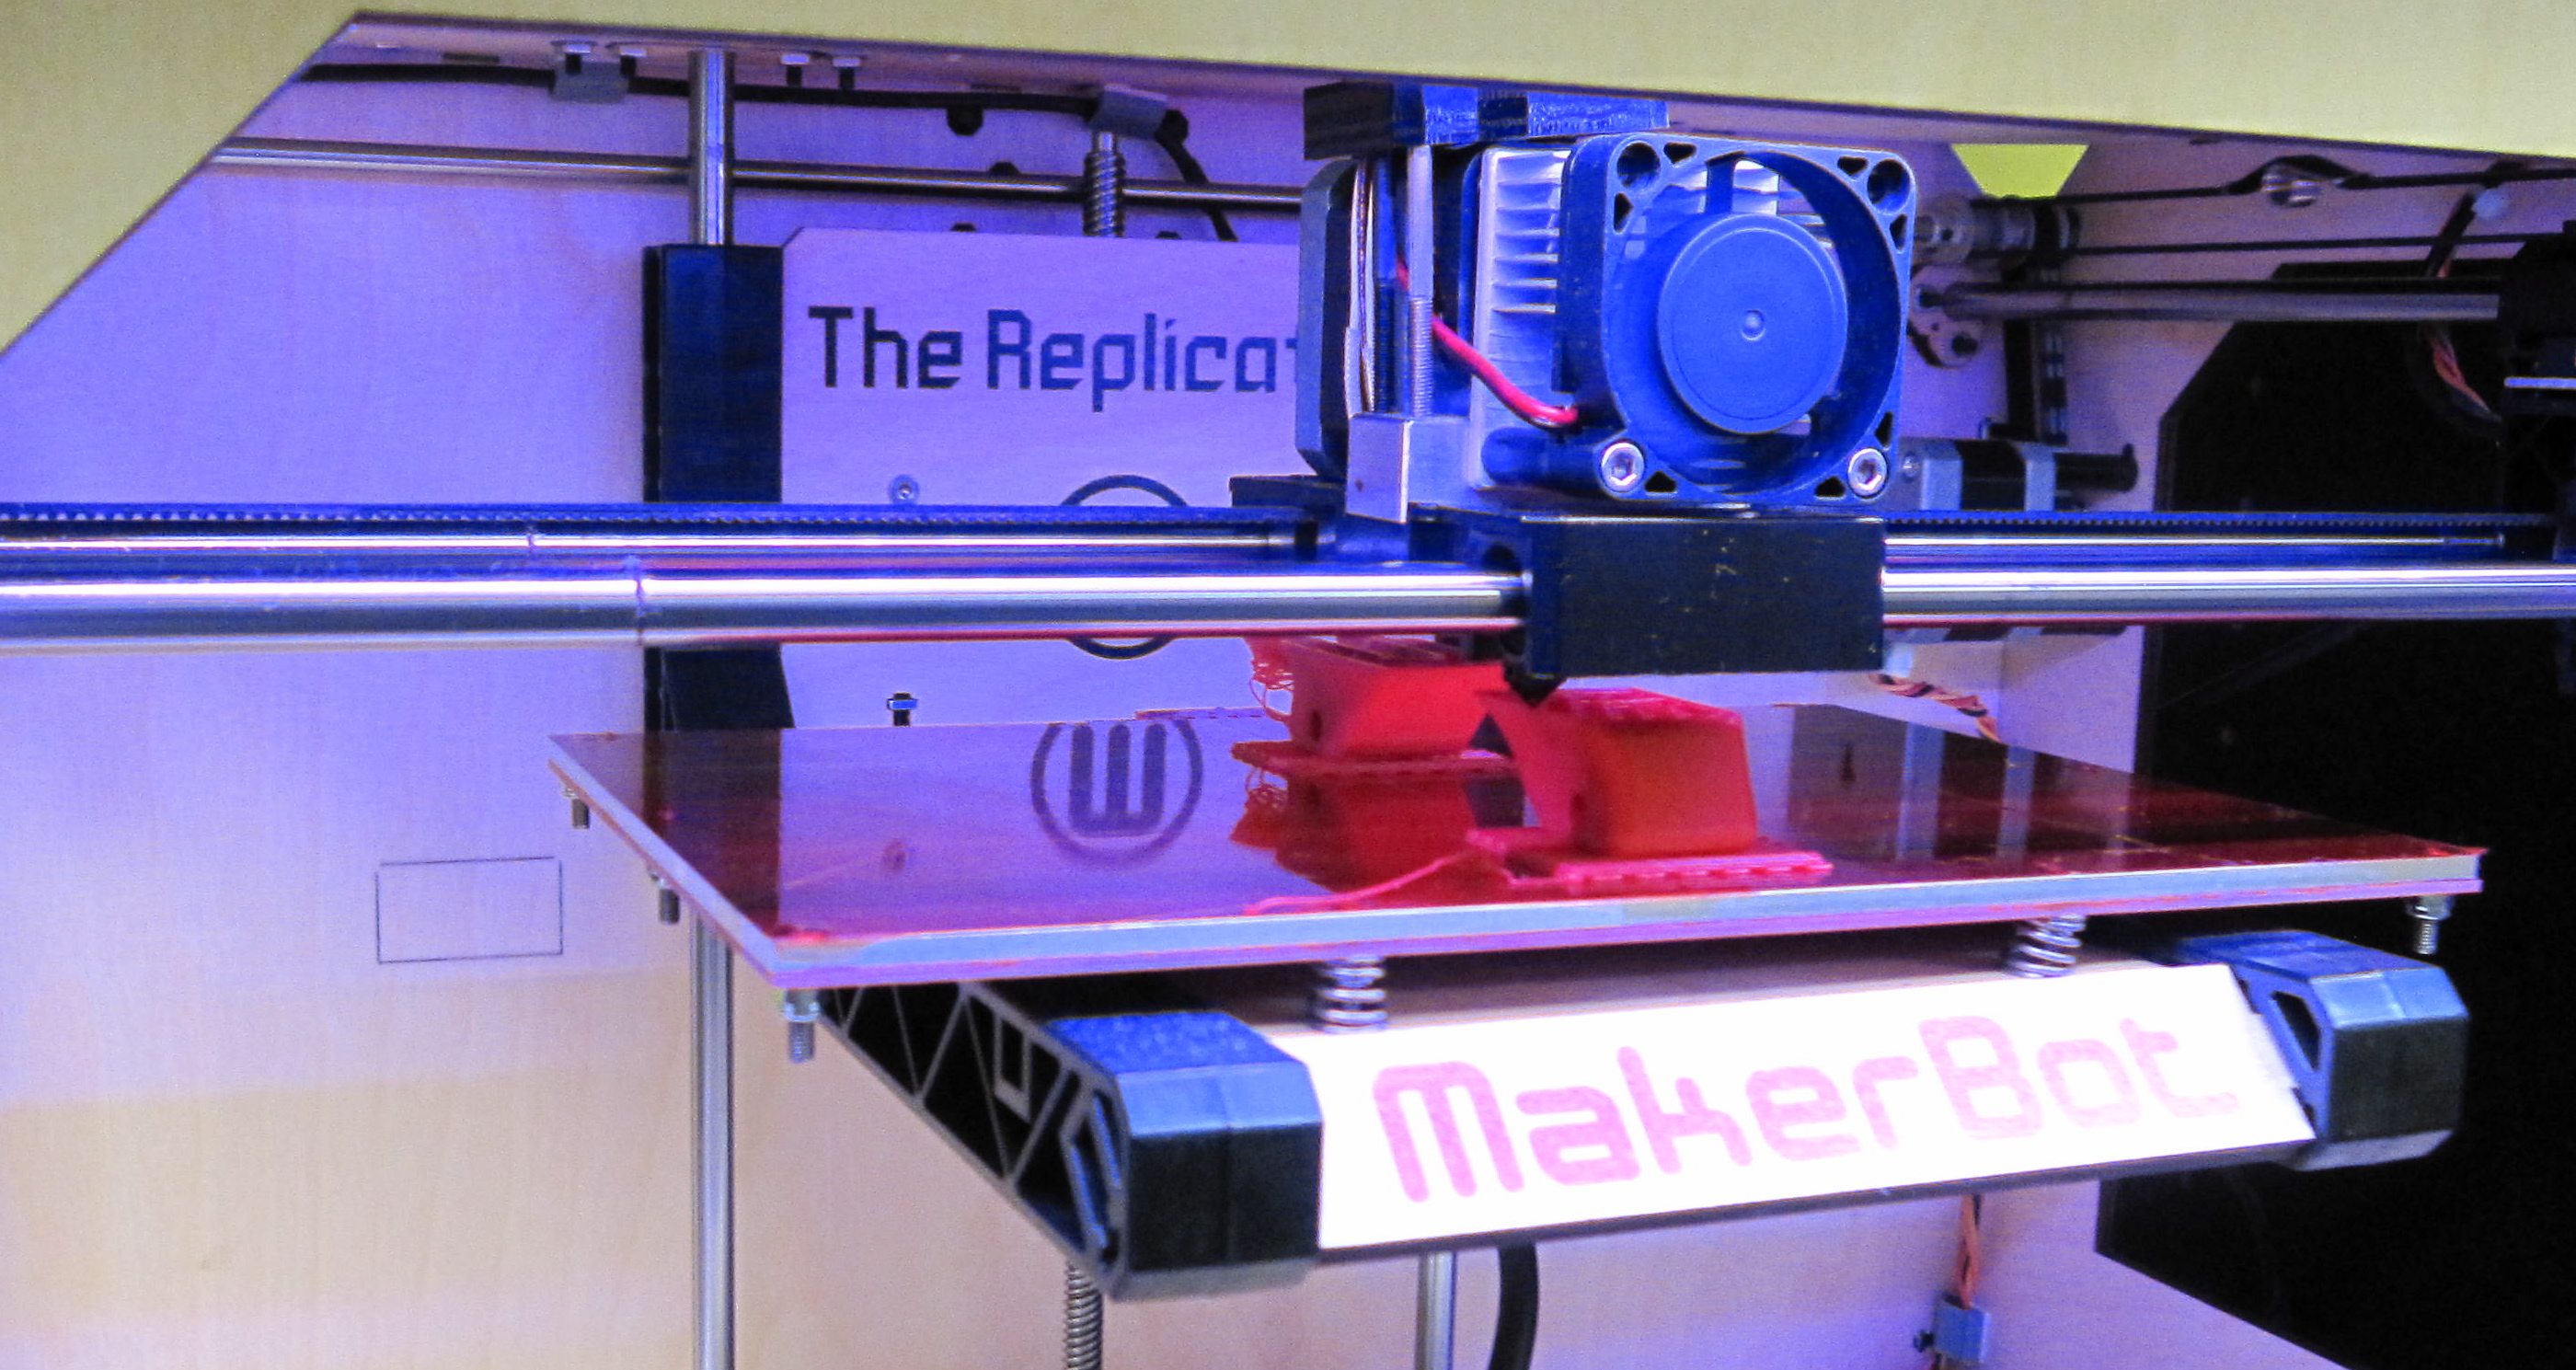 New Home for the Makerbot Replicator